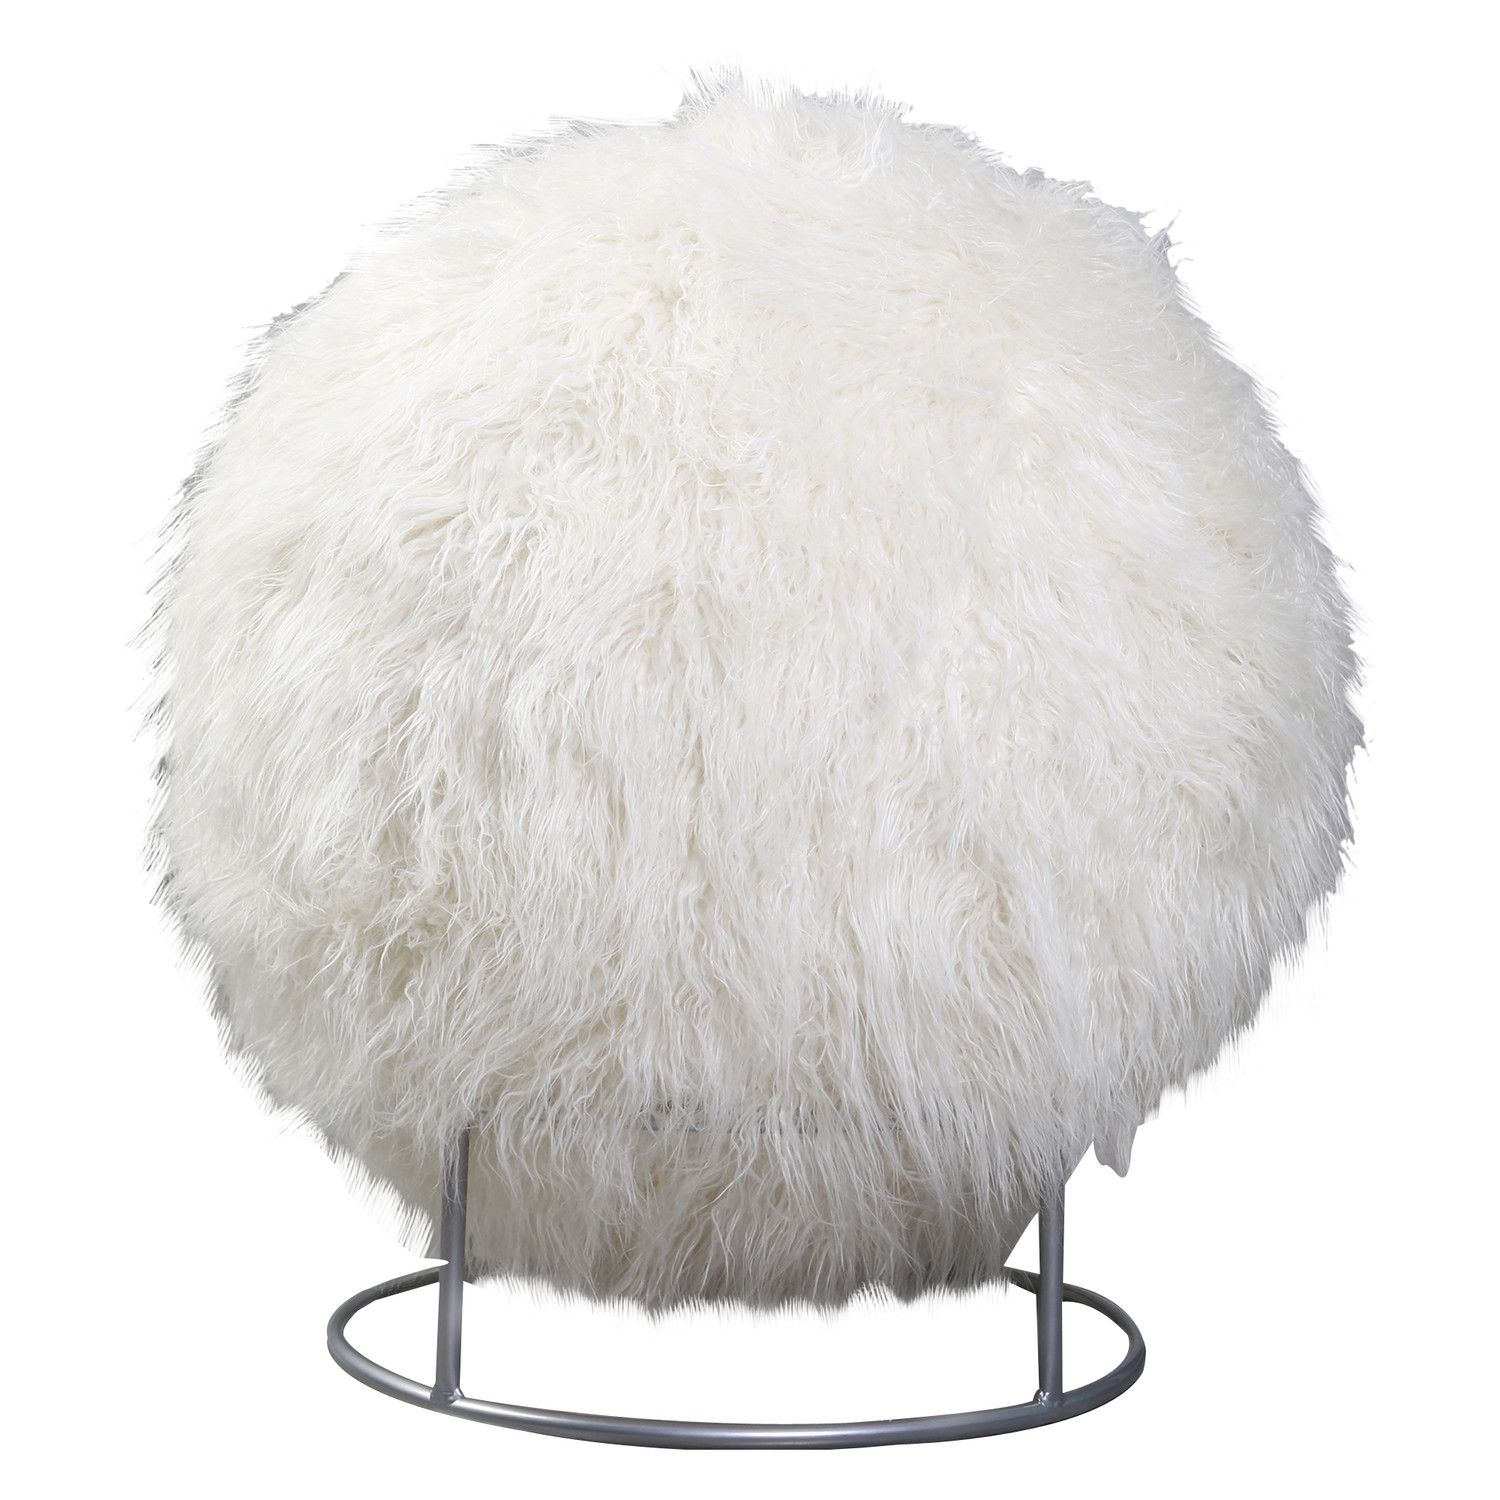 Best Home Fashion Inc Kushy Cushy Mongolian Lamb Faux Fur Yoga Ball Chair Baby